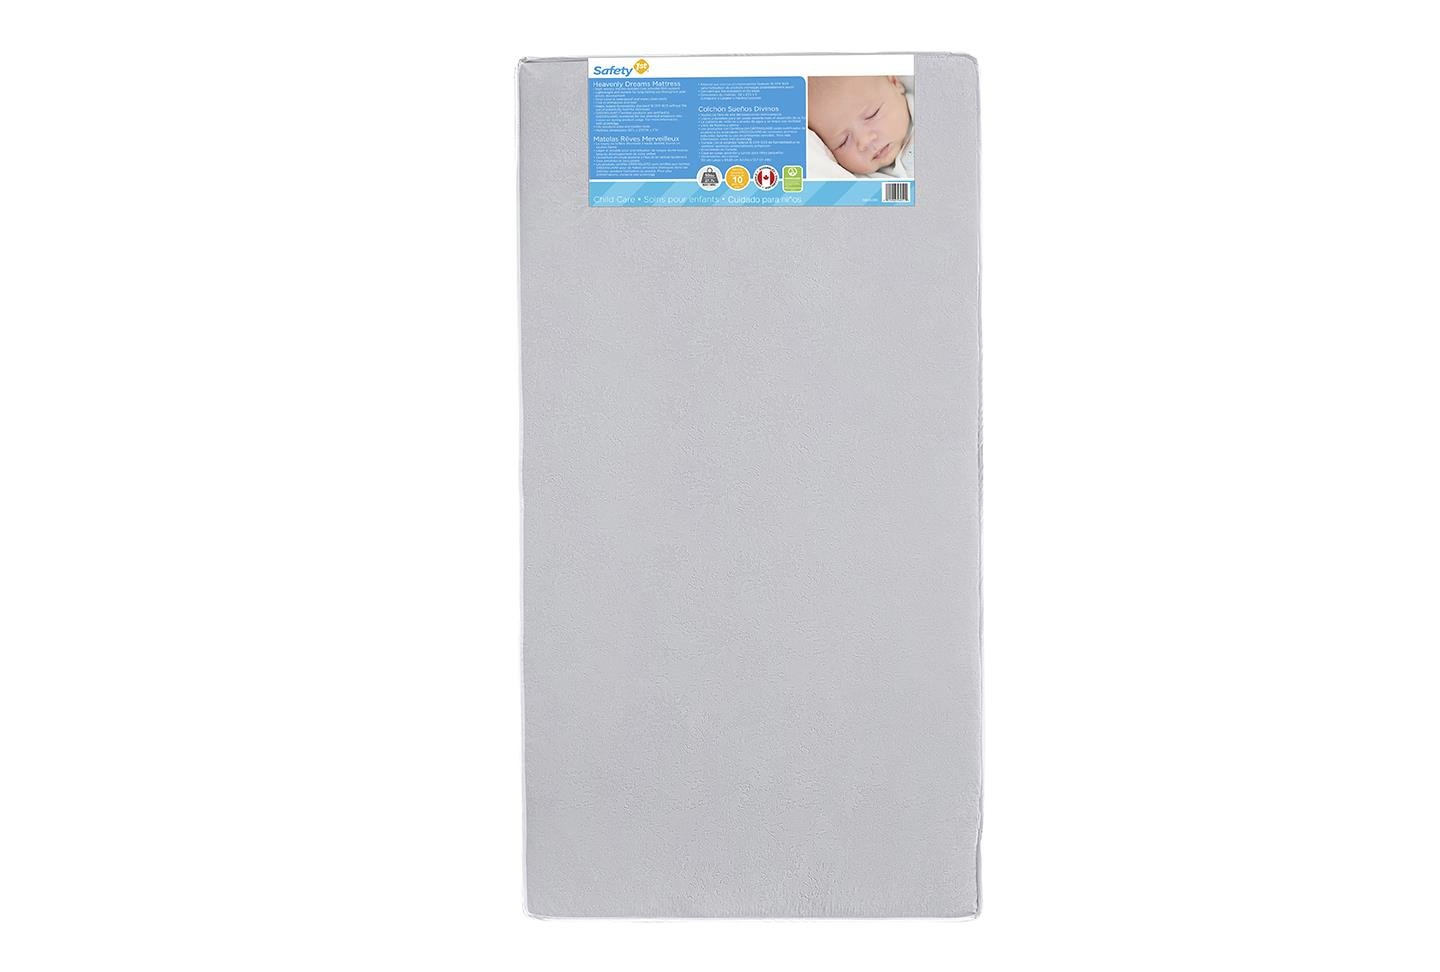 Safety 1st Heavenly Dreams White Crib & Toddler Bed Mattress for Baby & Toddler, Water Resistant, Lightweight, Hypoallergenic, Green Guard Gold Certified by Safety 1st